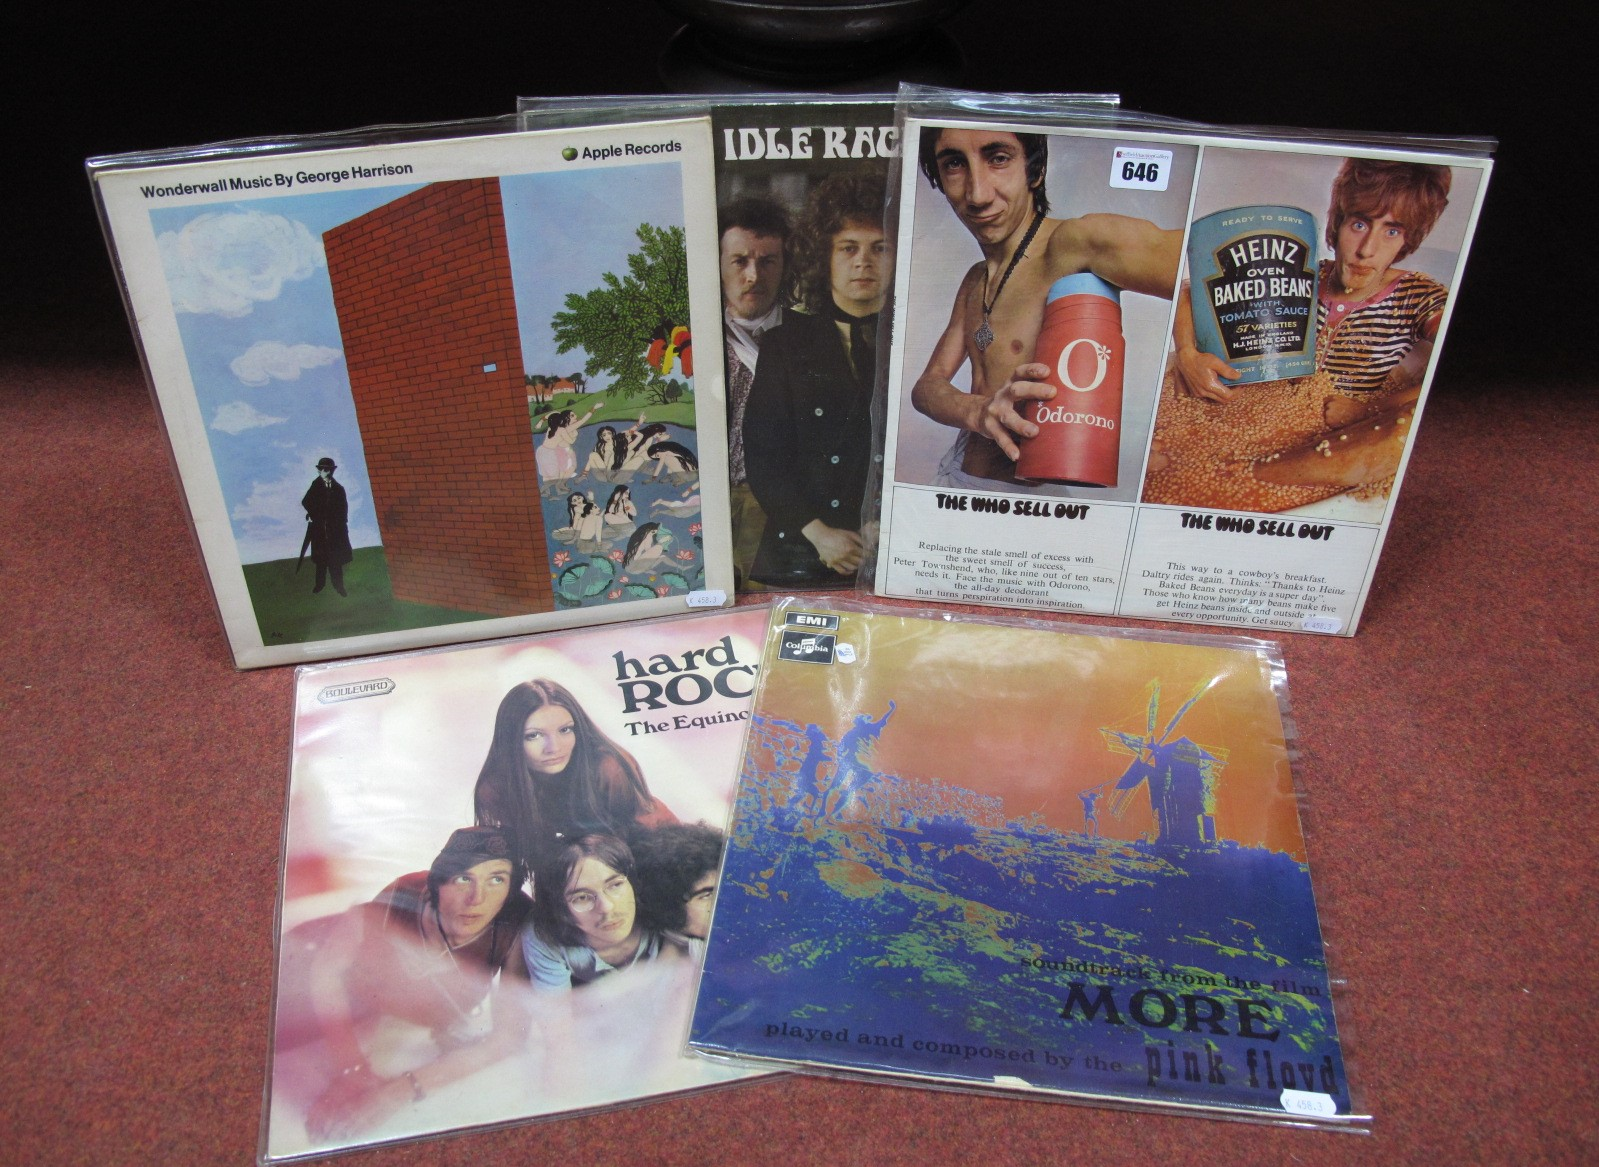 Lot 646 - UK Psych/Rock - The Who 'Sell Out' LP (Track, Stereo, 613002 A2/B1 matrix, Patent Pending E.J. Day